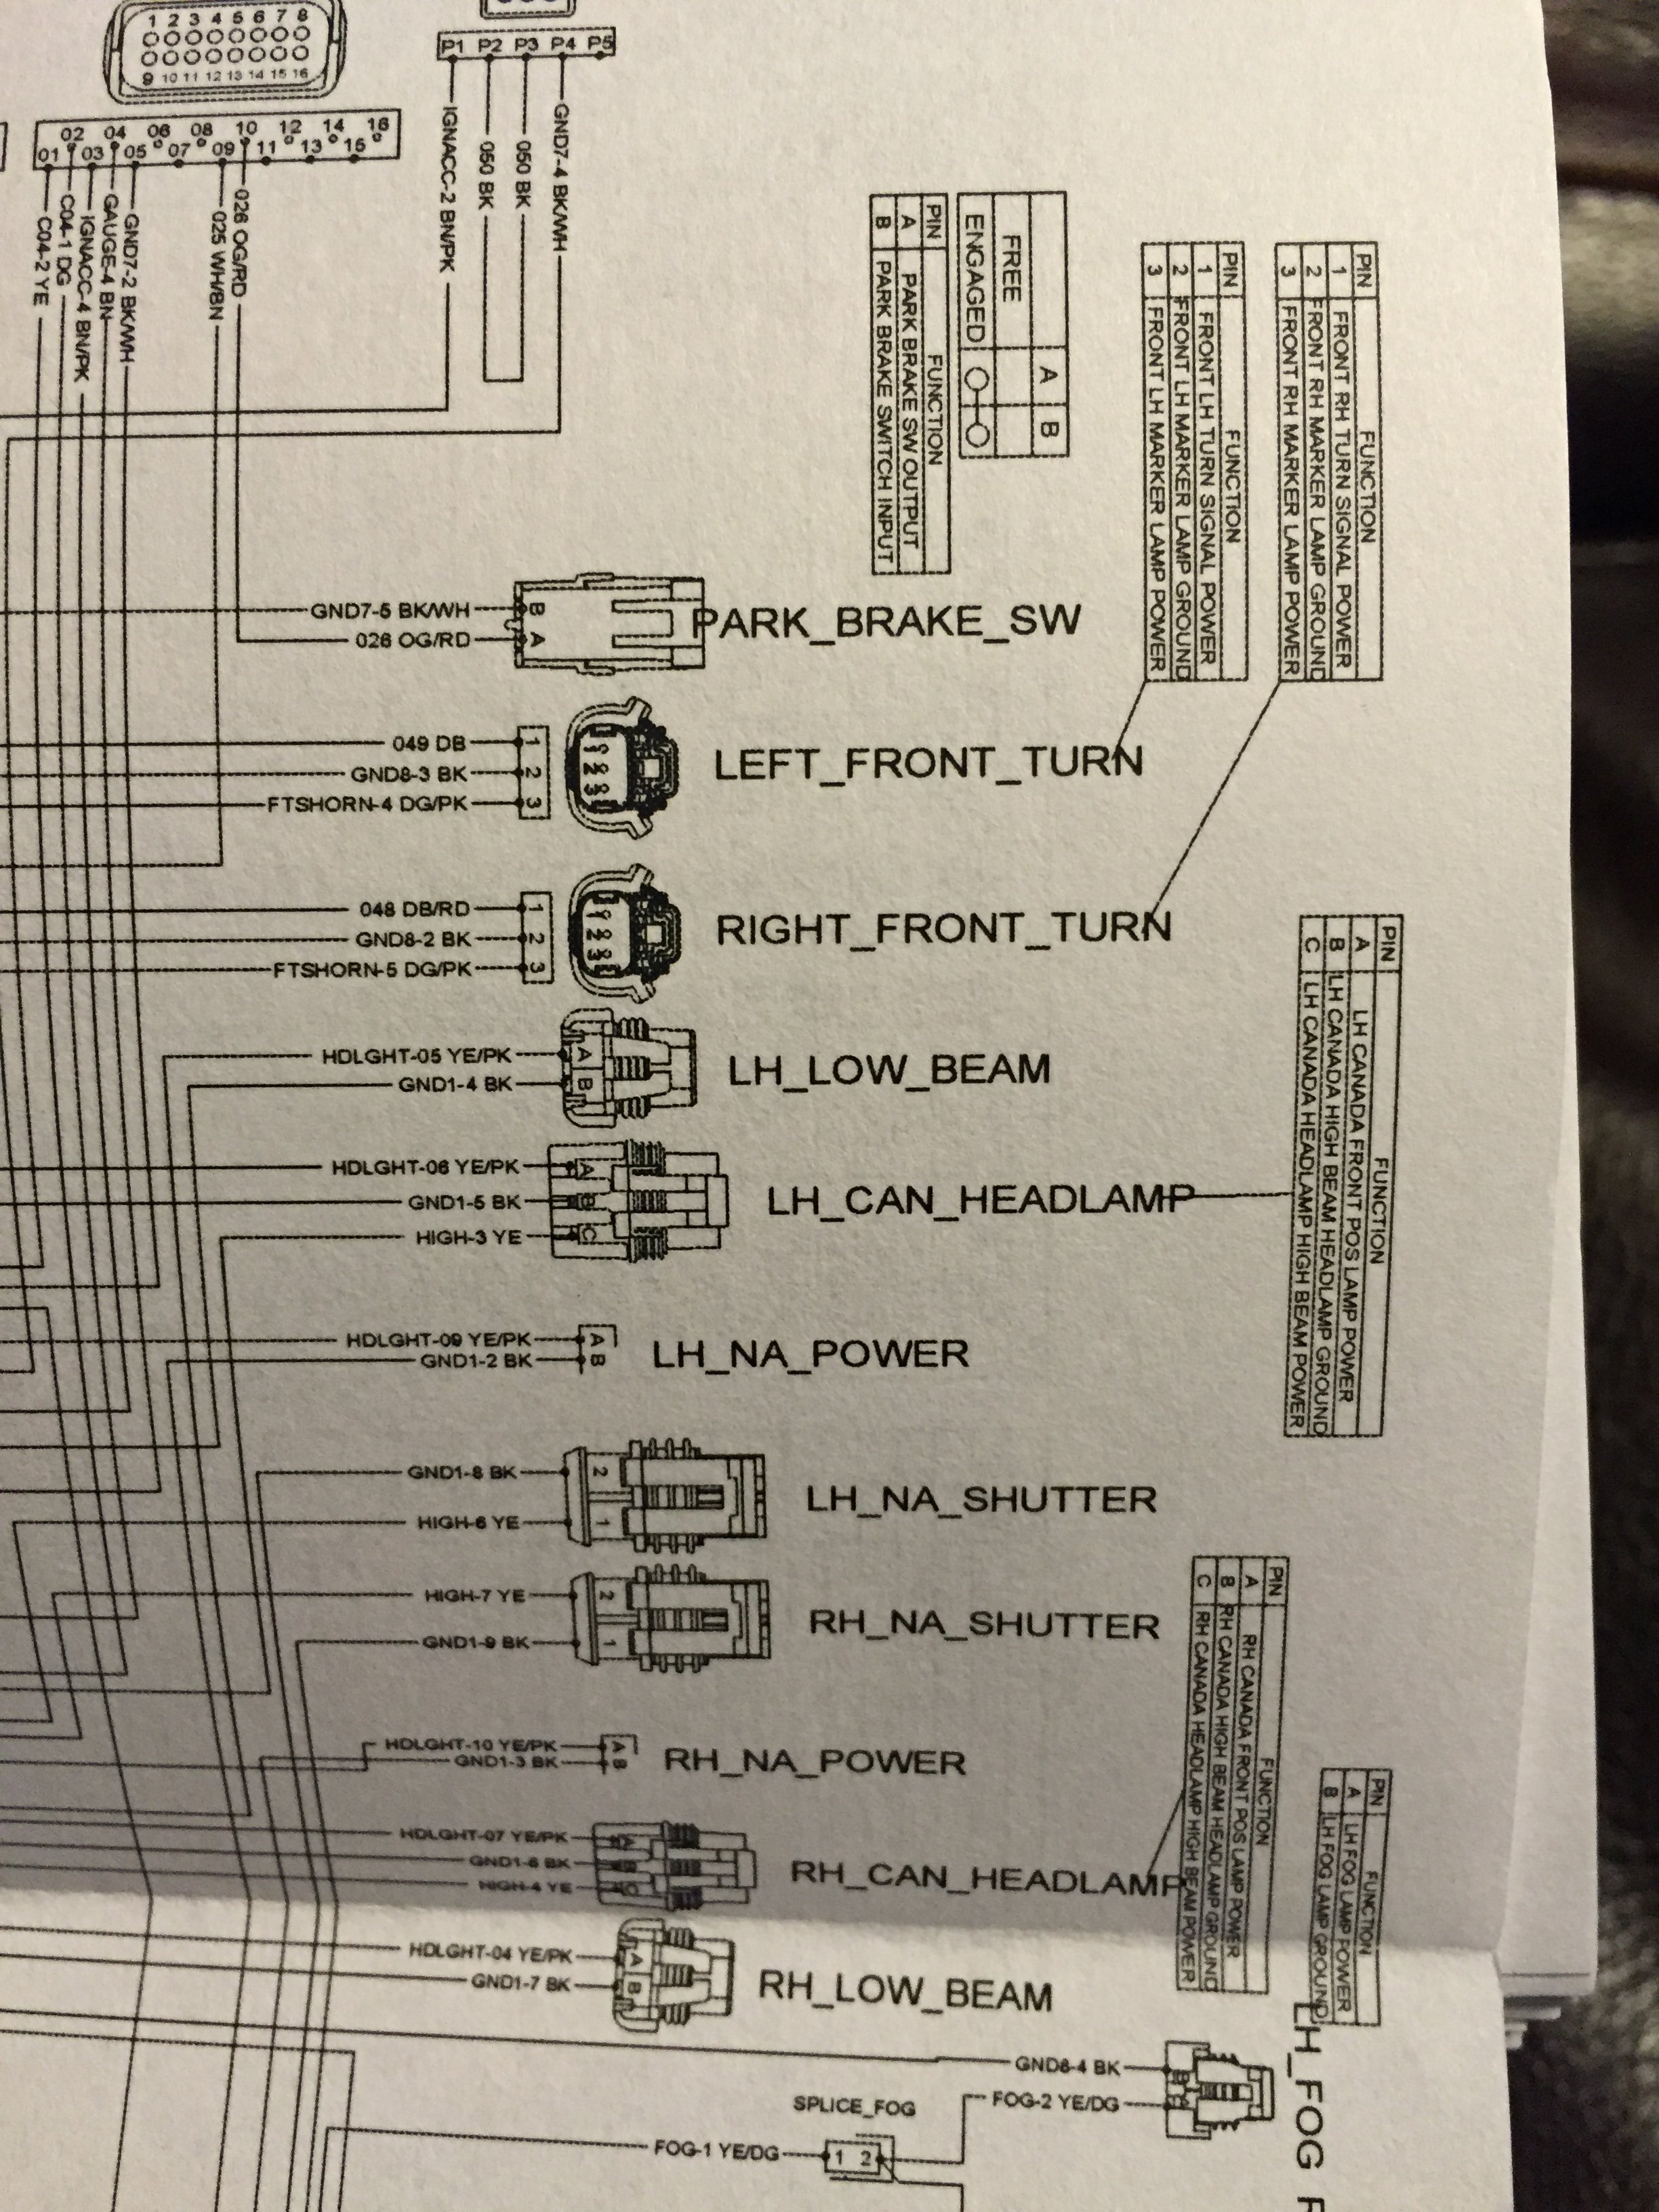 2005 polaris ranger 500 wiring diagram wirdig polaris rzr 800 wiring diagram together wiring diagram polaris